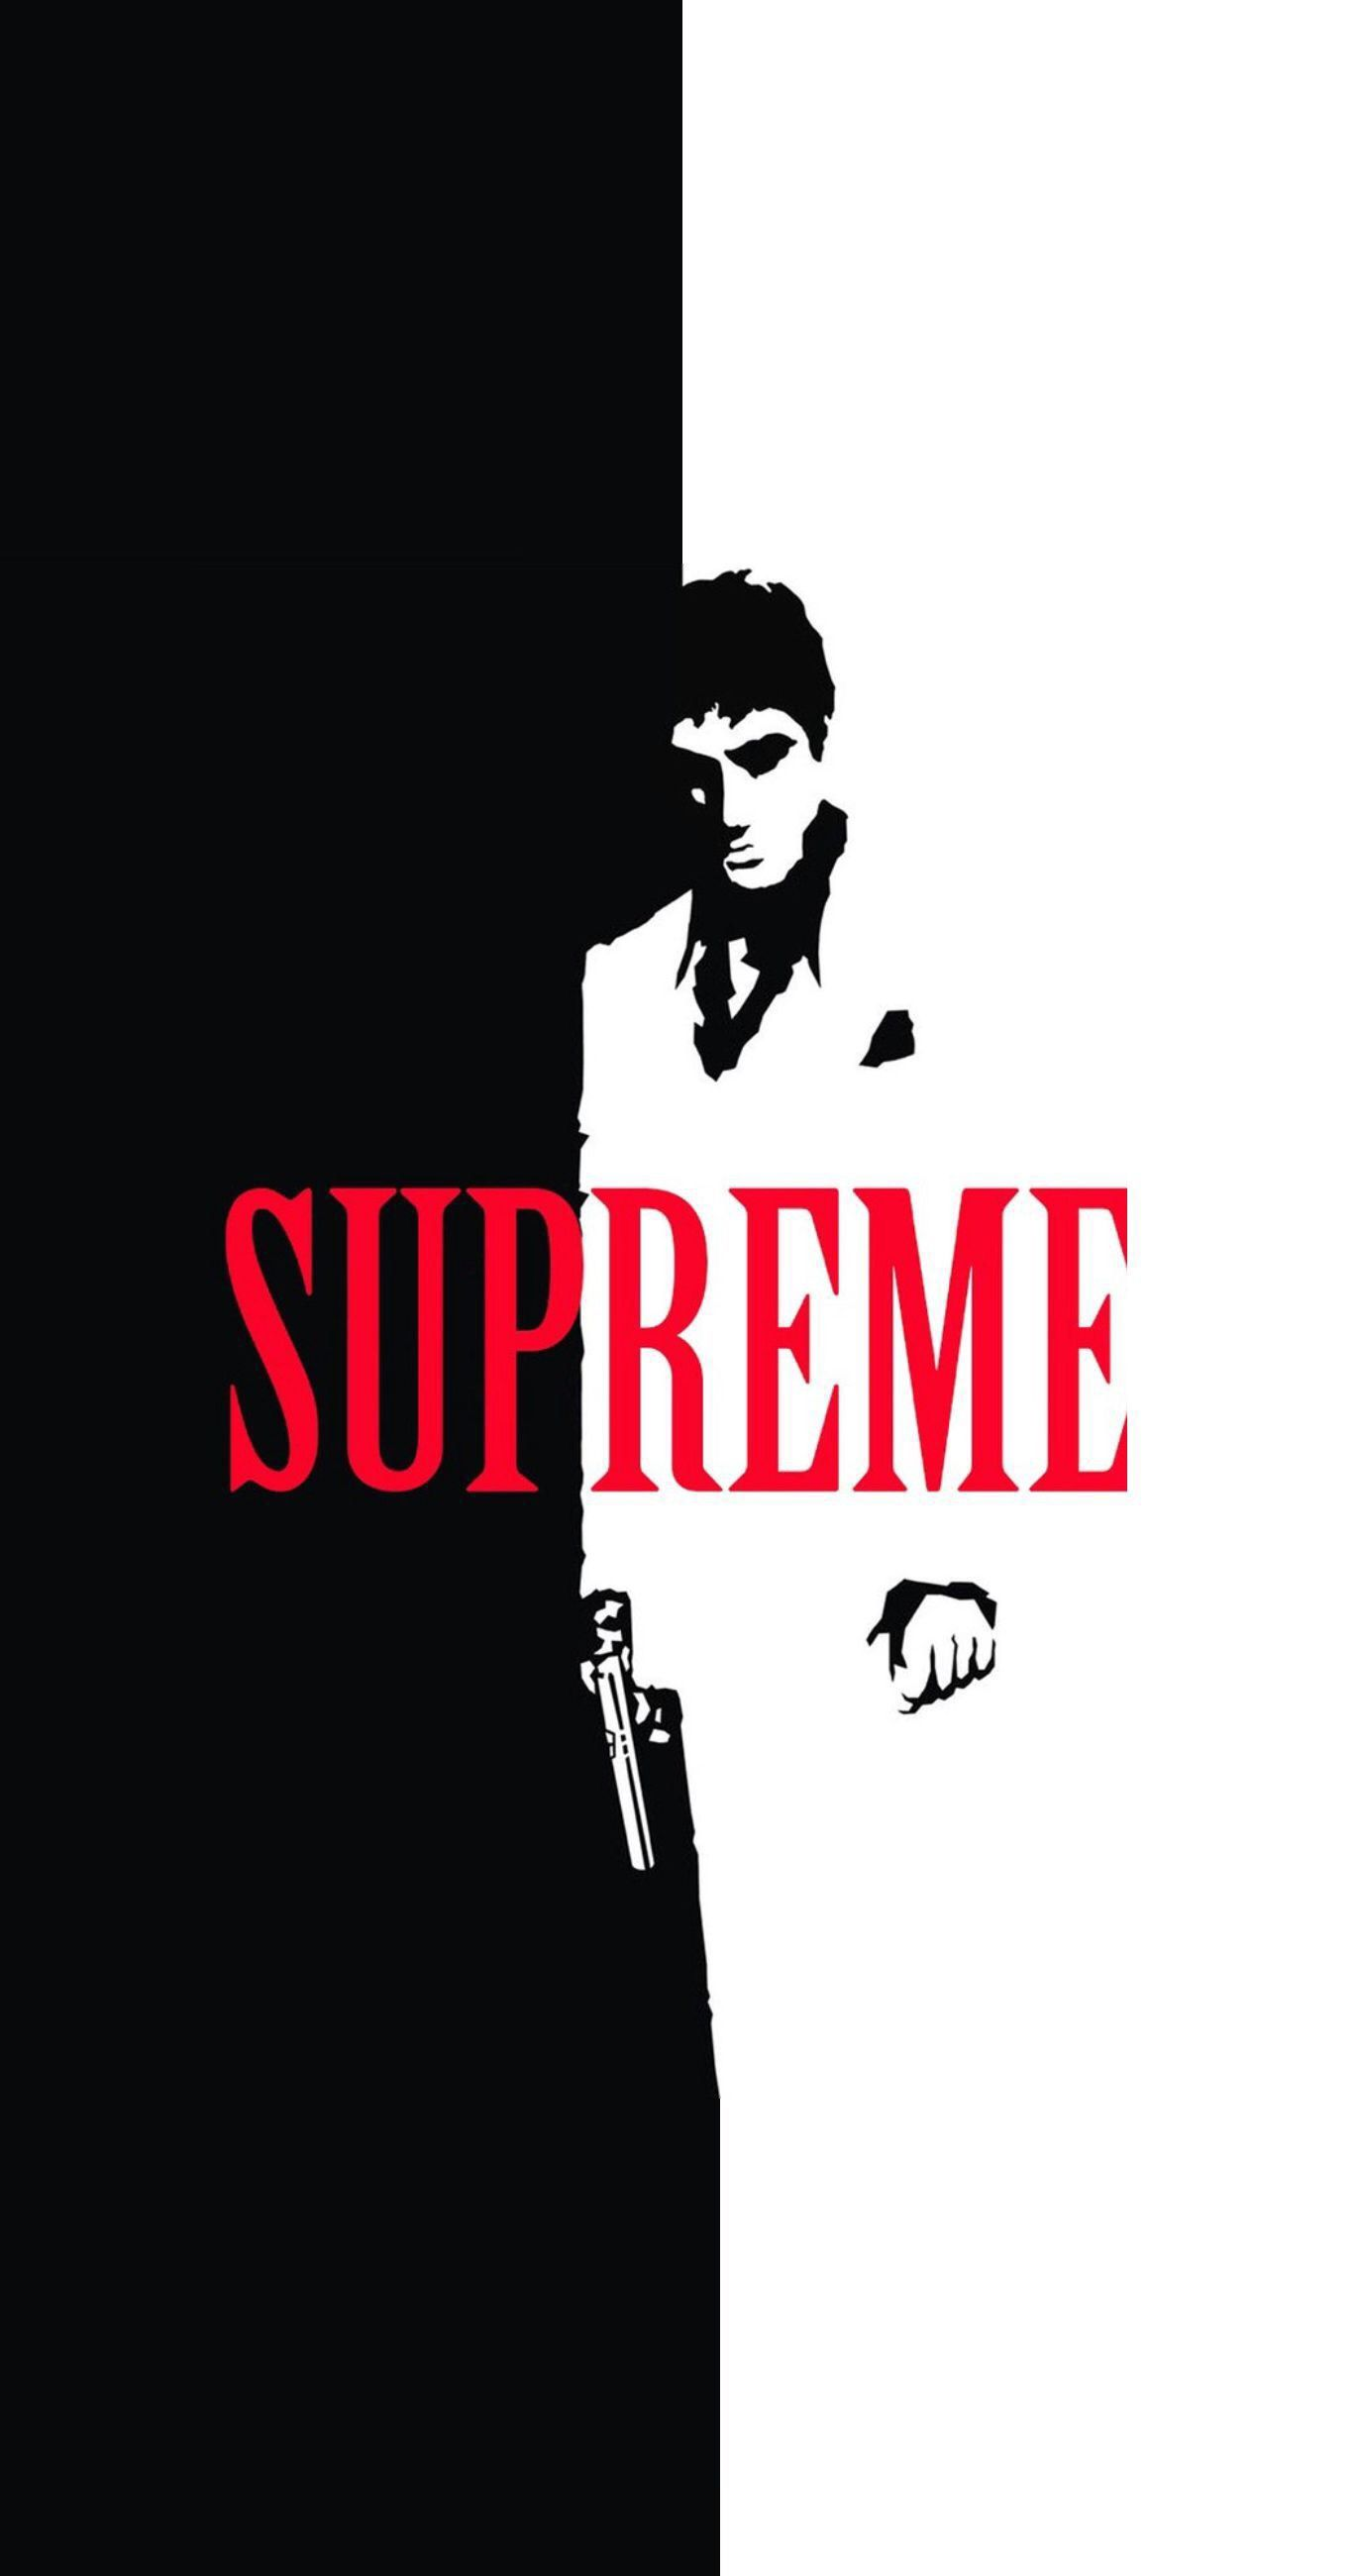 Scarface X Supreme Split Iphone Wallpaper Arrière Plans